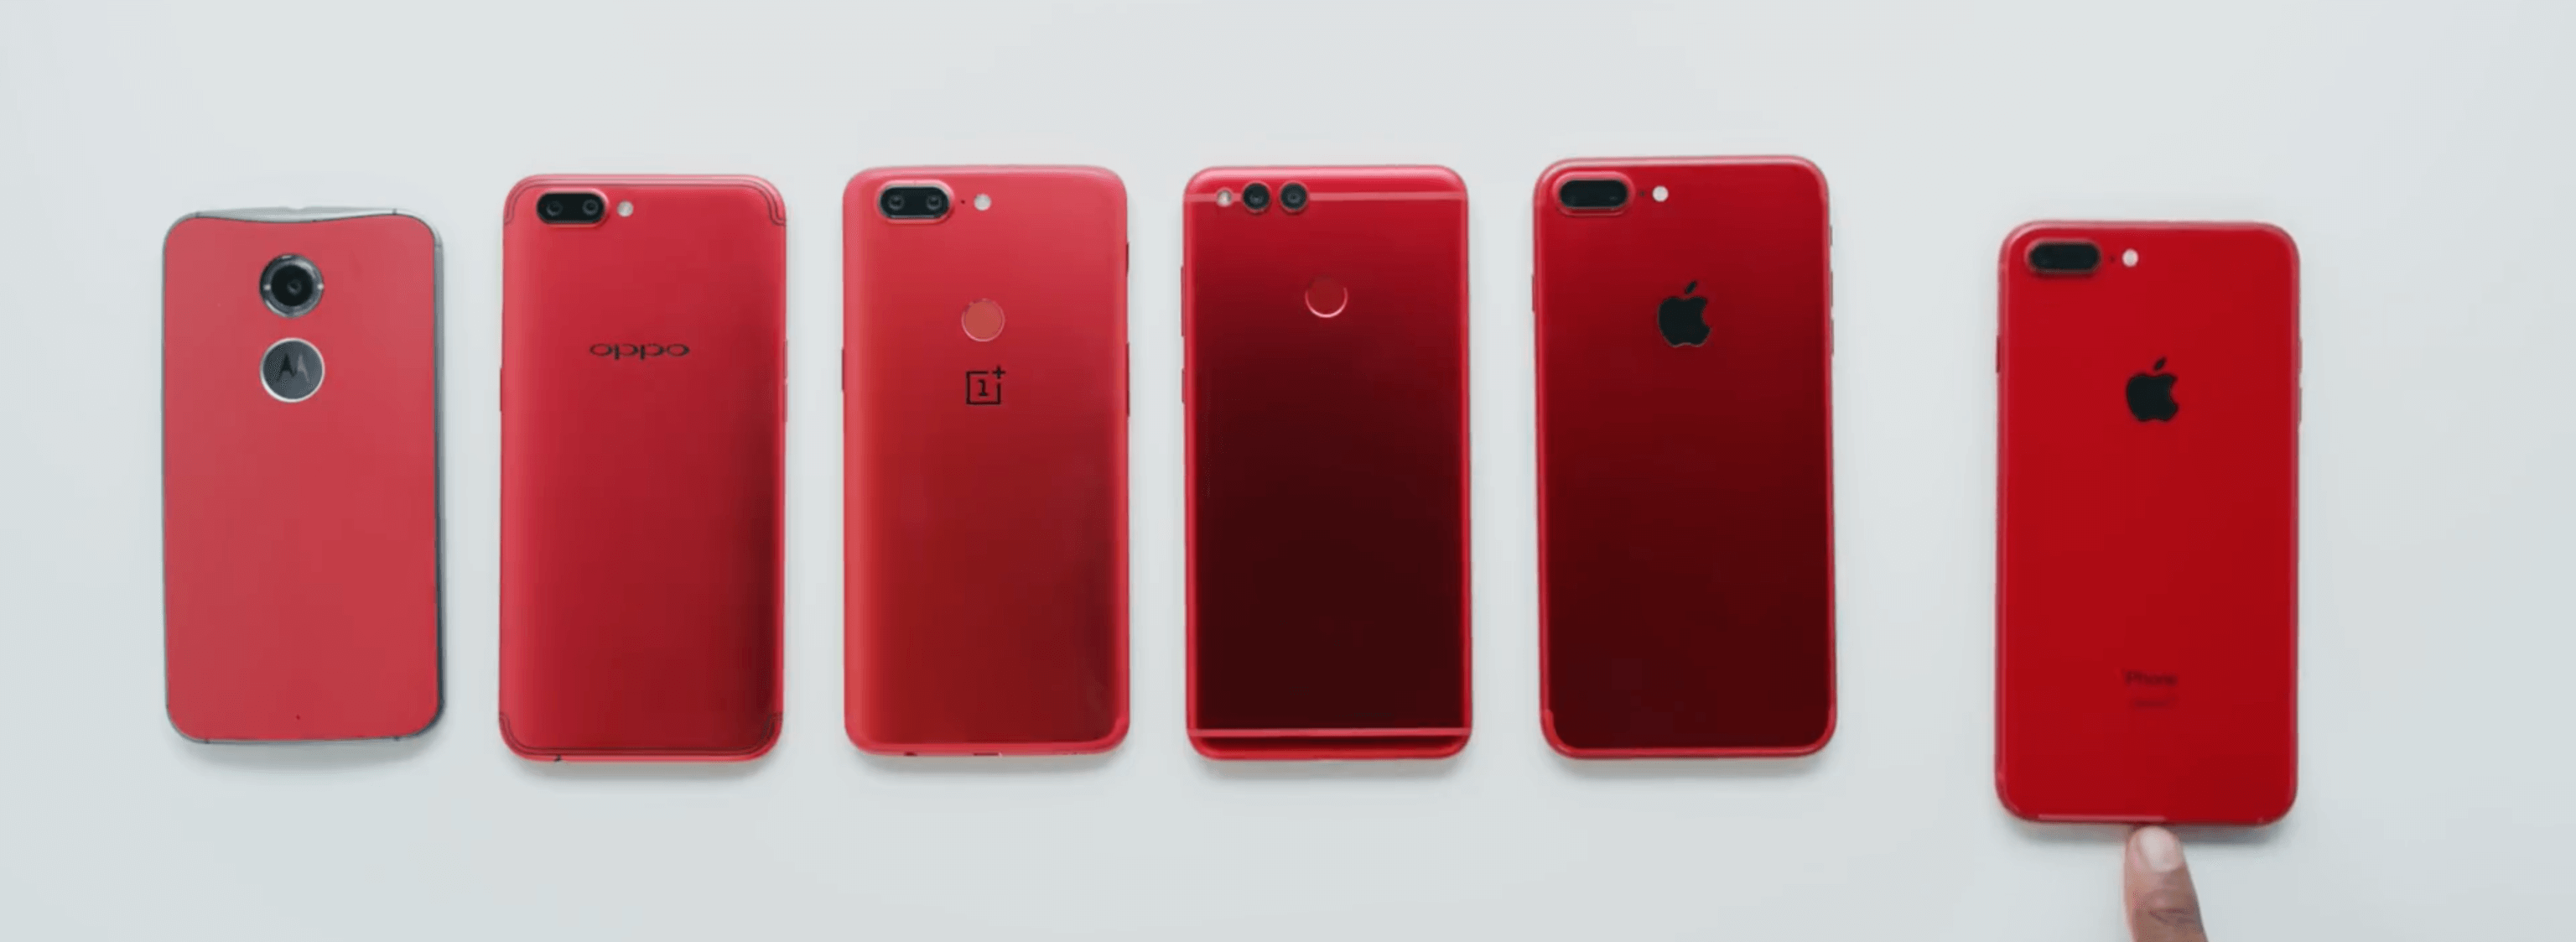 iphone 8 product red unboxing helleres und satteres rot. Black Bedroom Furniture Sets. Home Design Ideas